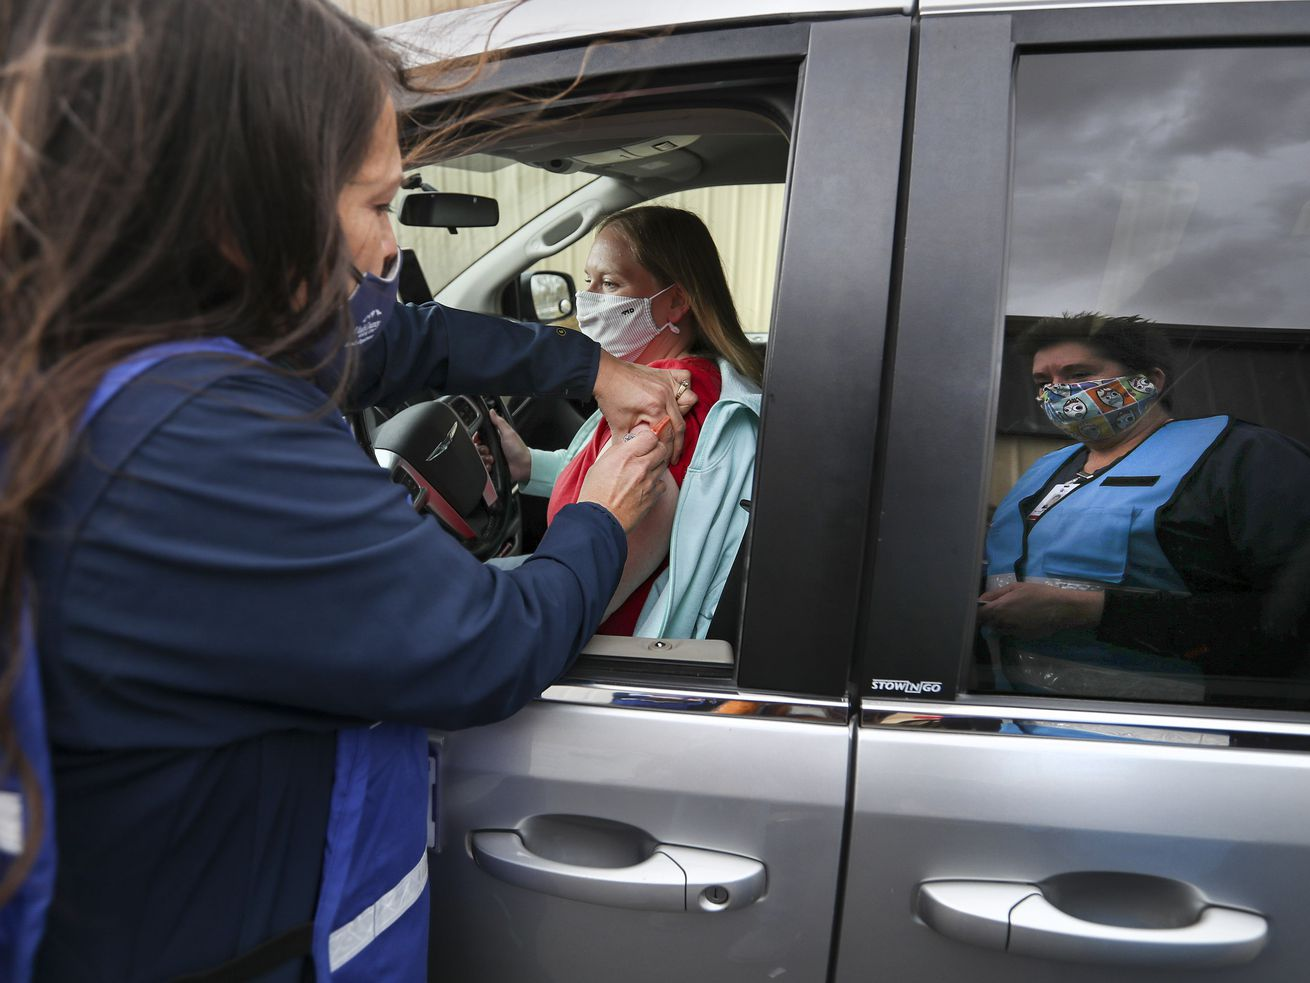 Tonya Hansen, a registered nurse with the Utah County Health Department, gives Brooke Barnes a flu shot during a drive-thru flu shot clinic at the Spanish Fork Fairgrounds on Wednesday, Nov. 18, 2020.